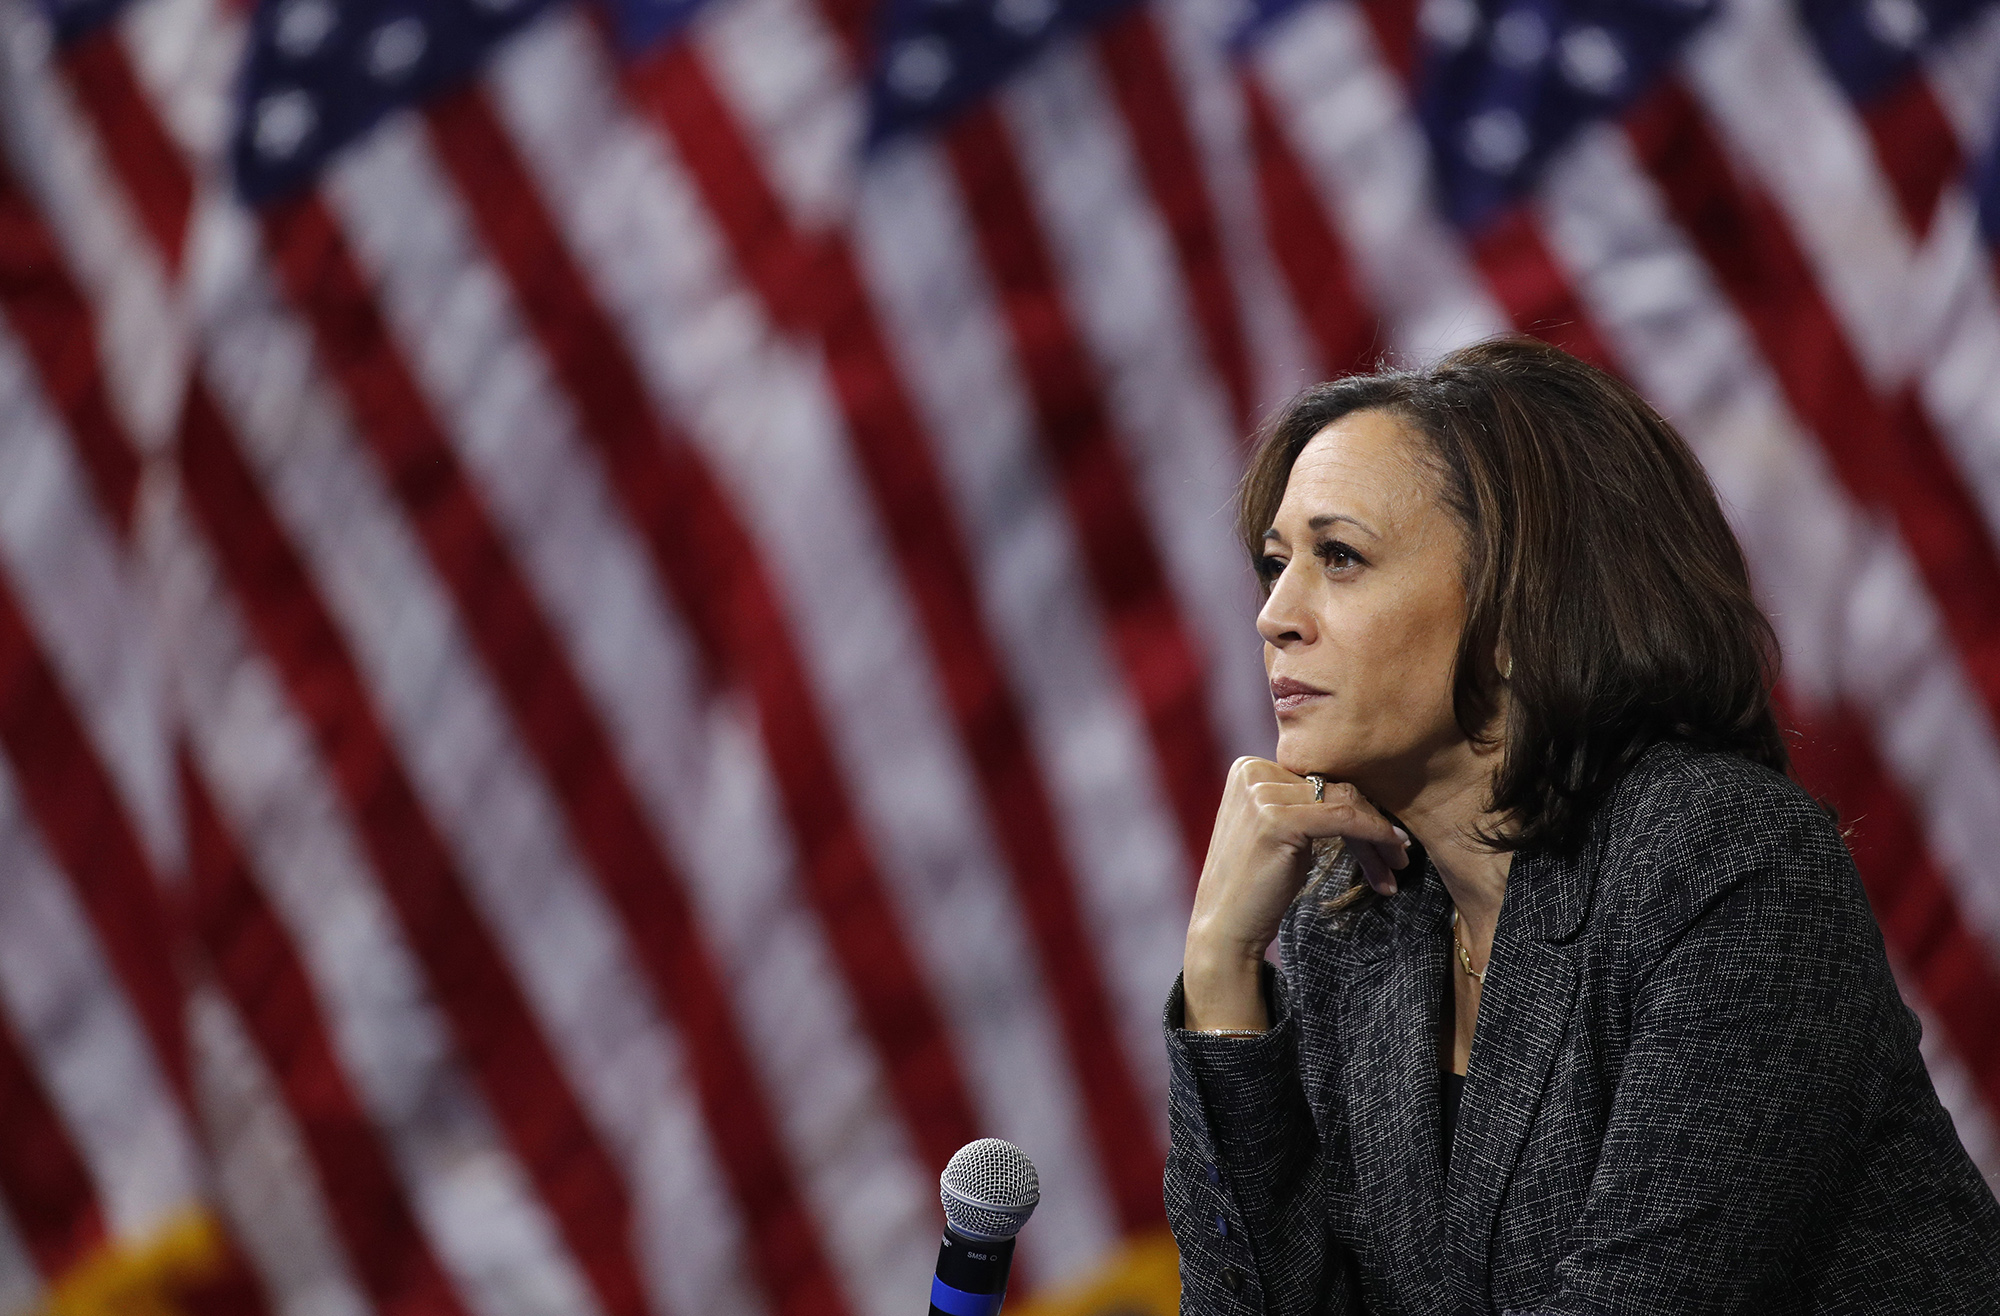 Democratic presidential candidate Kamala Harris at an October gun safety forum in Las Vegas, weeks before her withdrawal from the race. Photo by John Locher, AP Photo